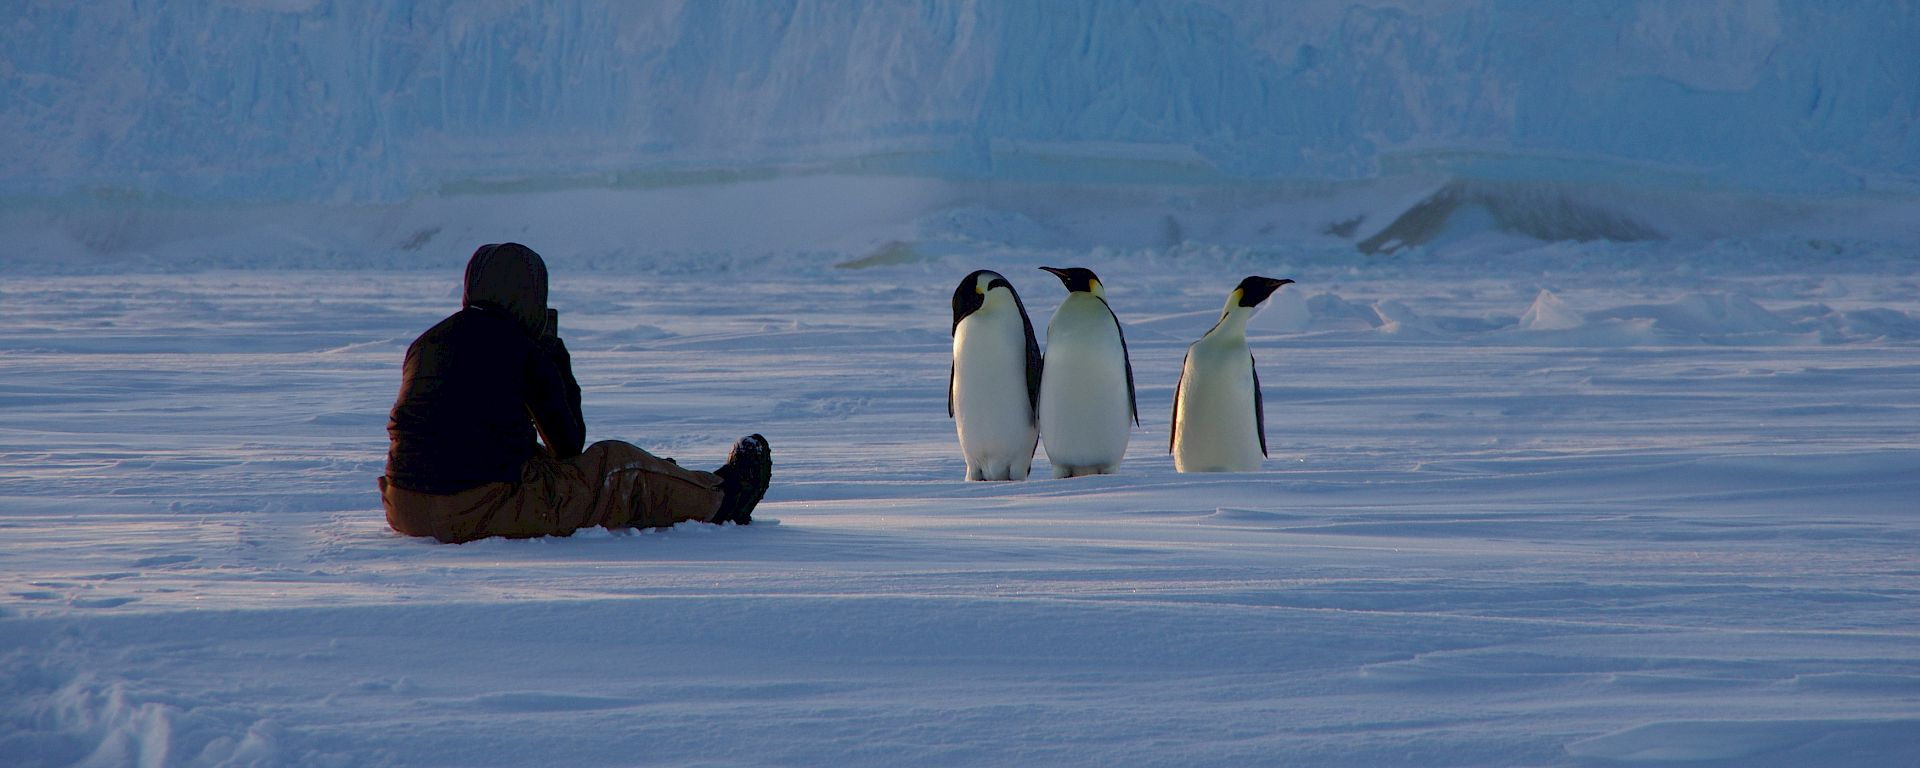 Expeditioner sitting on the sea ice observing three emperor penguins. Grounded iceberg close behind